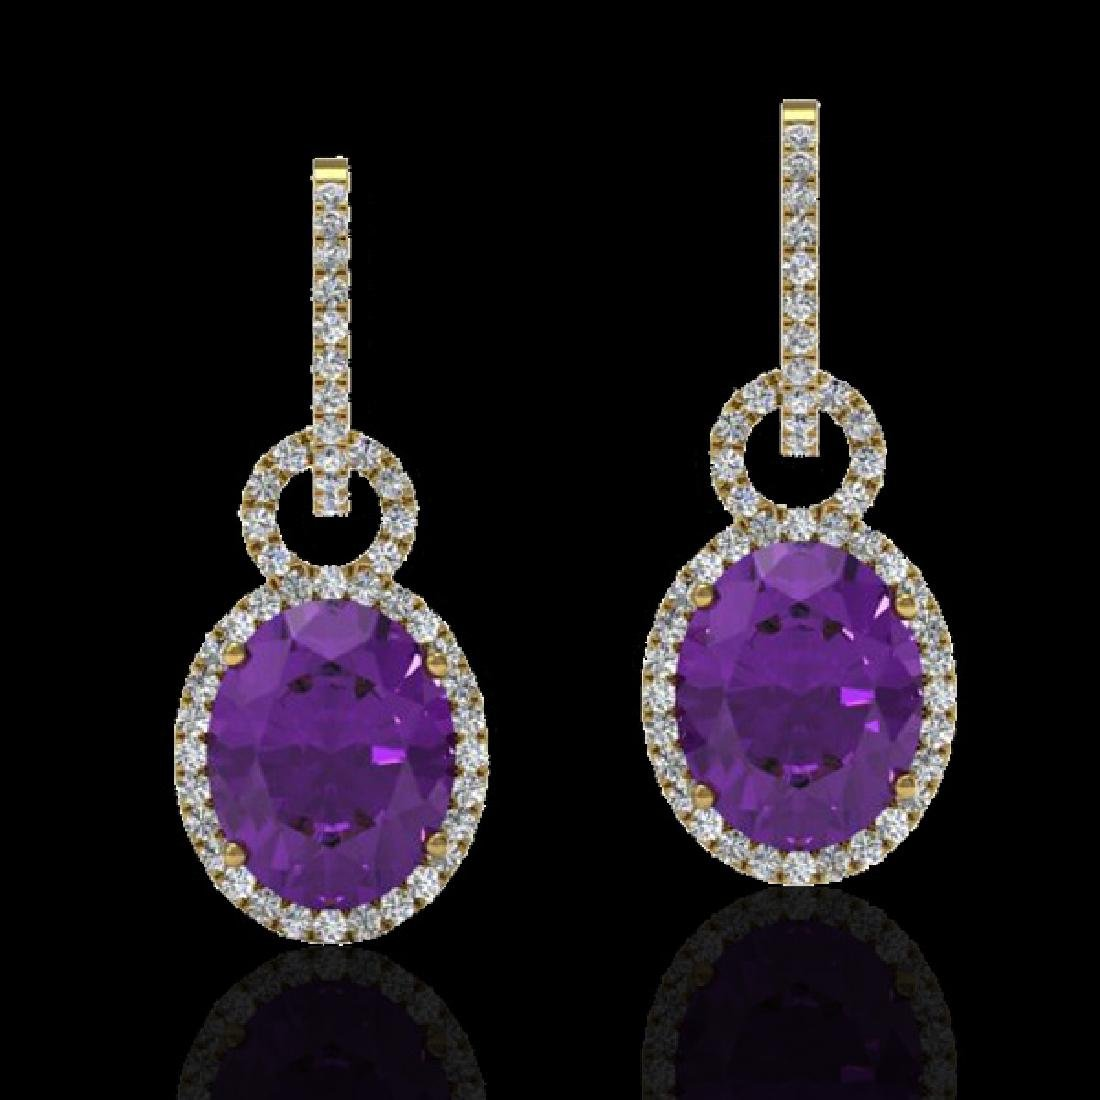 6 CTW Amethyst & Micro Pave Solitaire Halo VS/SI